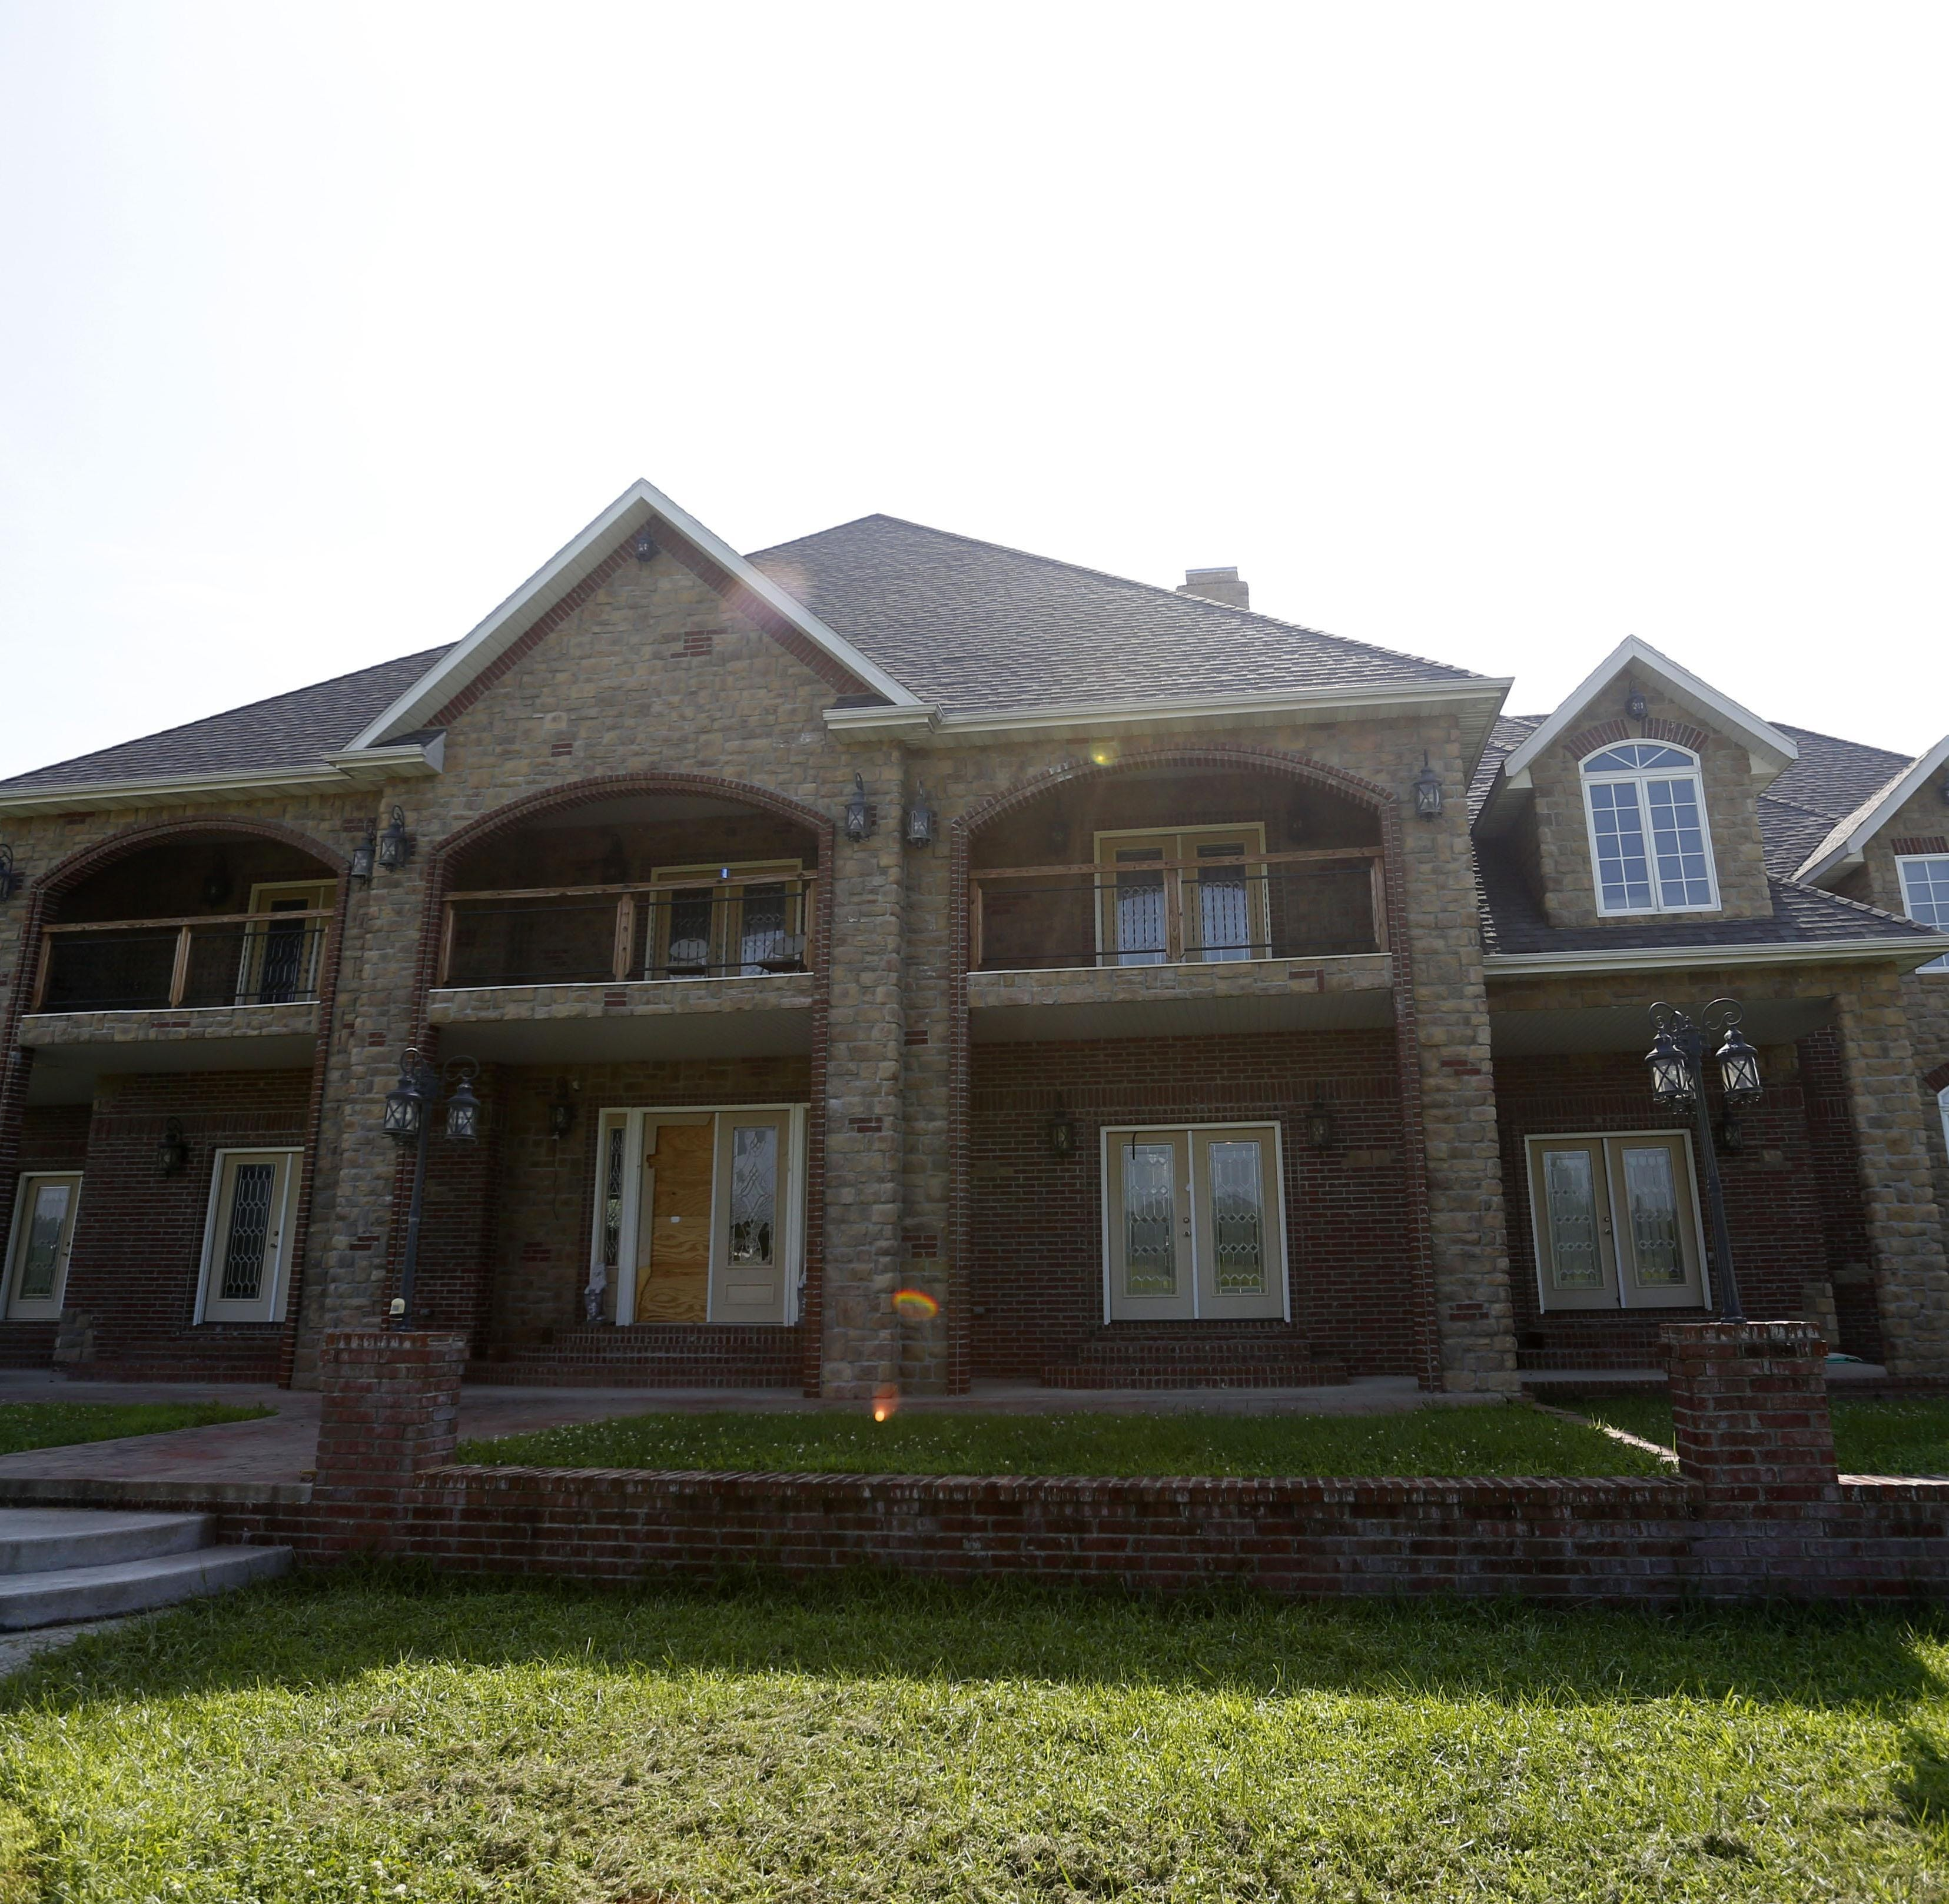 Court documents say a home in Bois D'Arc was searched during a 2015 sexual assault investigation.